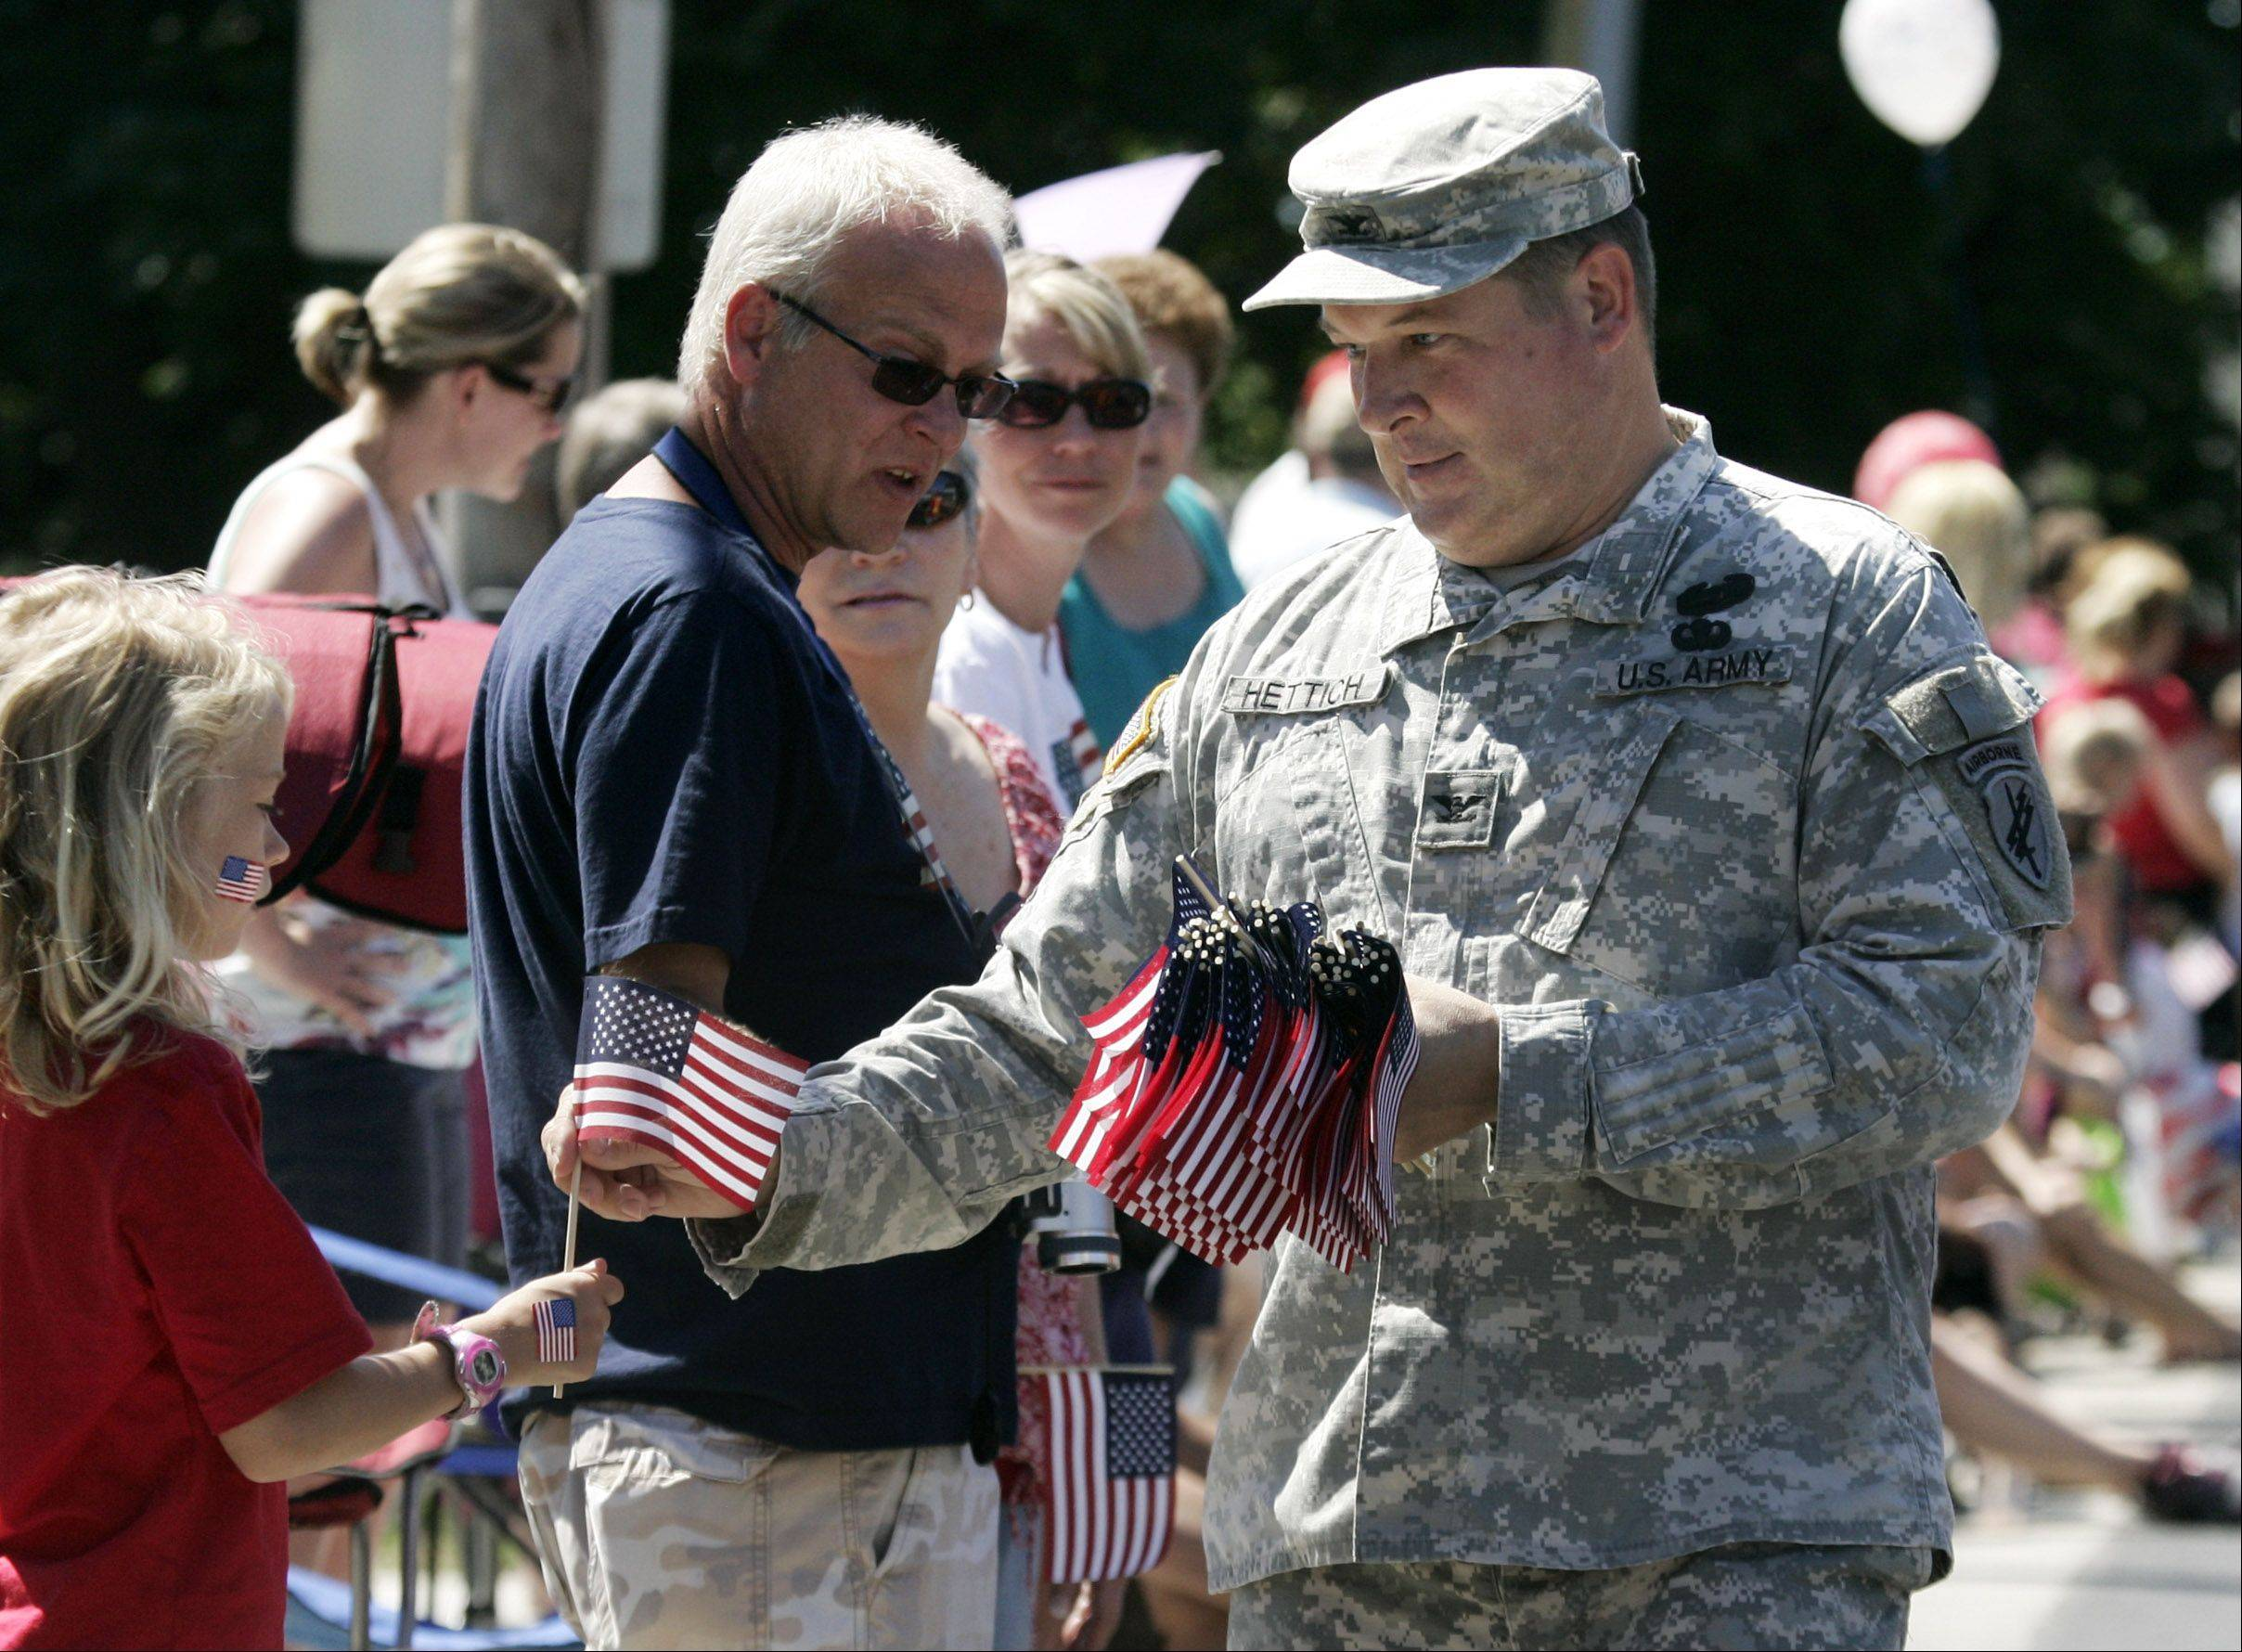 U.S. Army Col. Paul Hettich hands out flags during the Antioch Fourth of July parade Monday. Hettich has spent three tours in Iraq and is scheduled to go to Afghanistan.